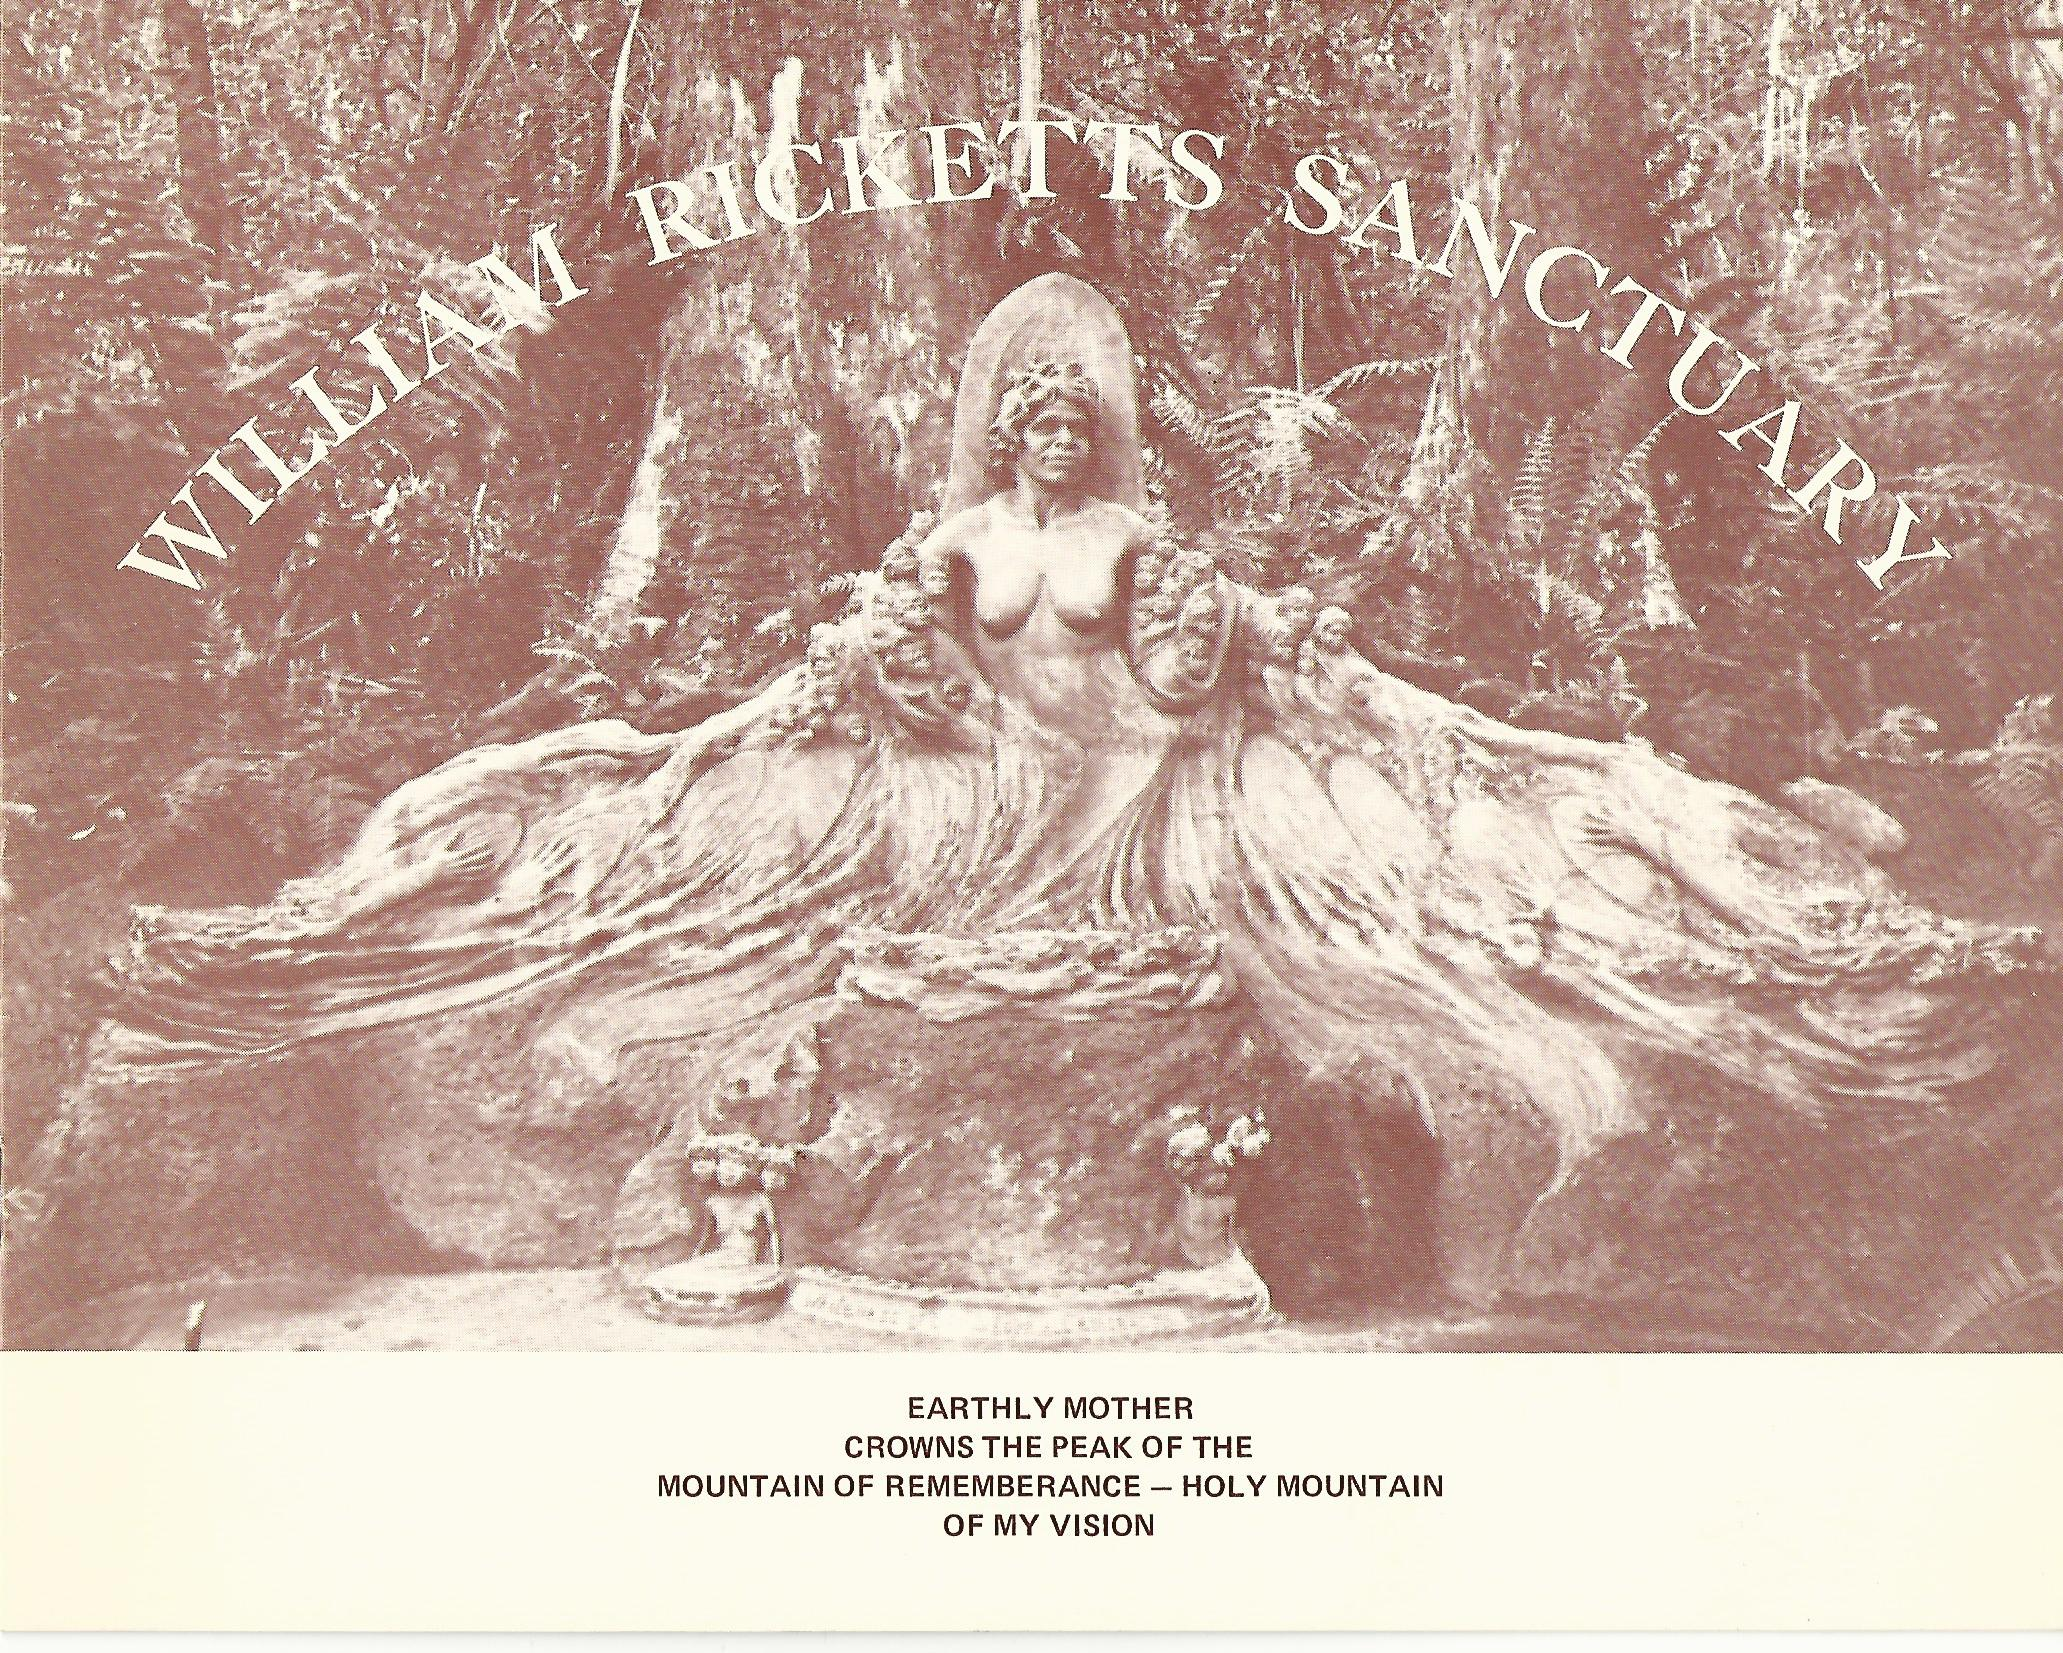 Image for William Ricketts Sanctuary